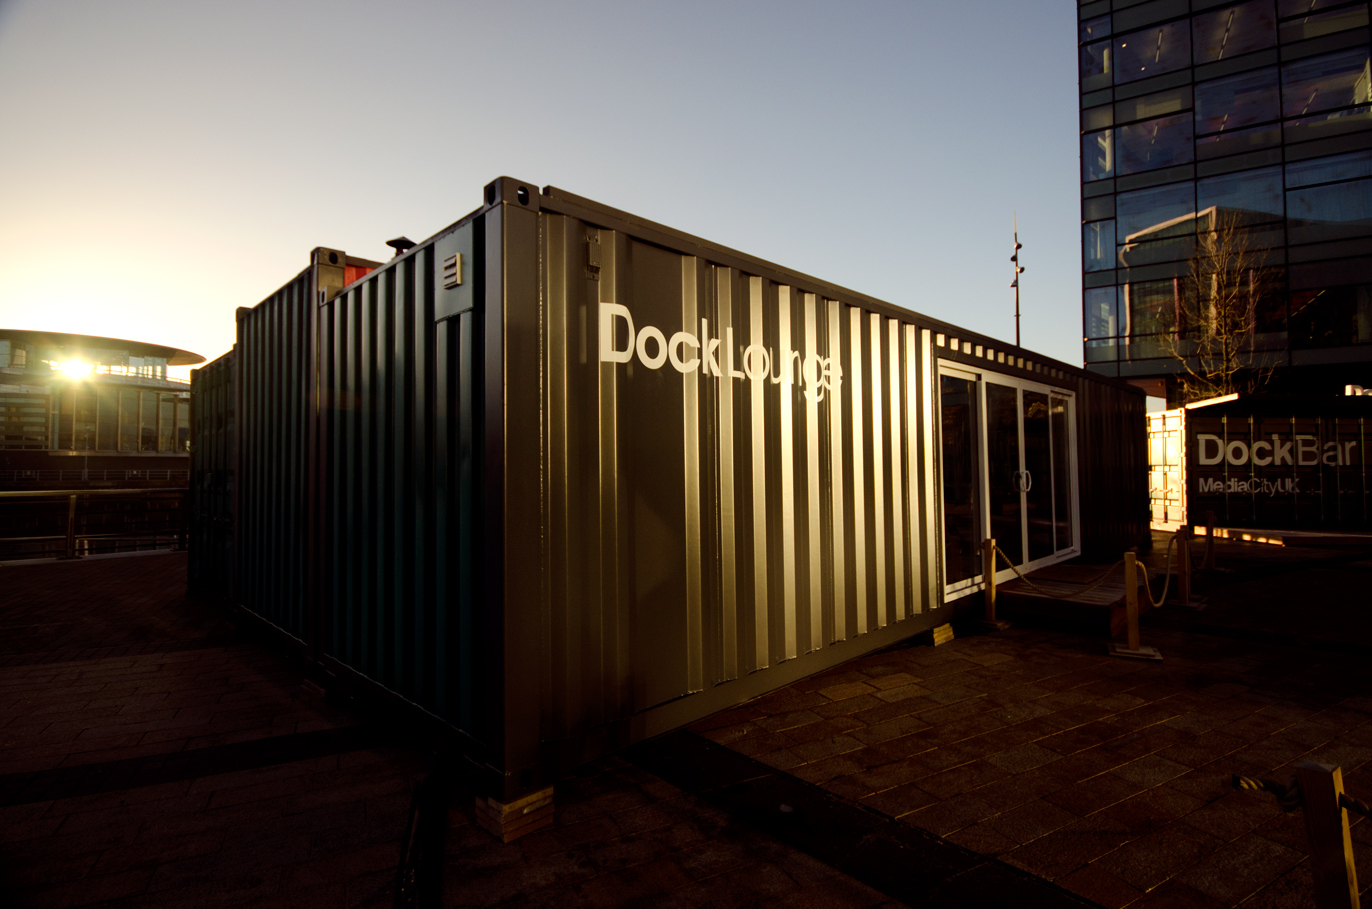 Shipping container homes whitecrate dockbar mediacityuk london 3 shipping container - Container homes london ...